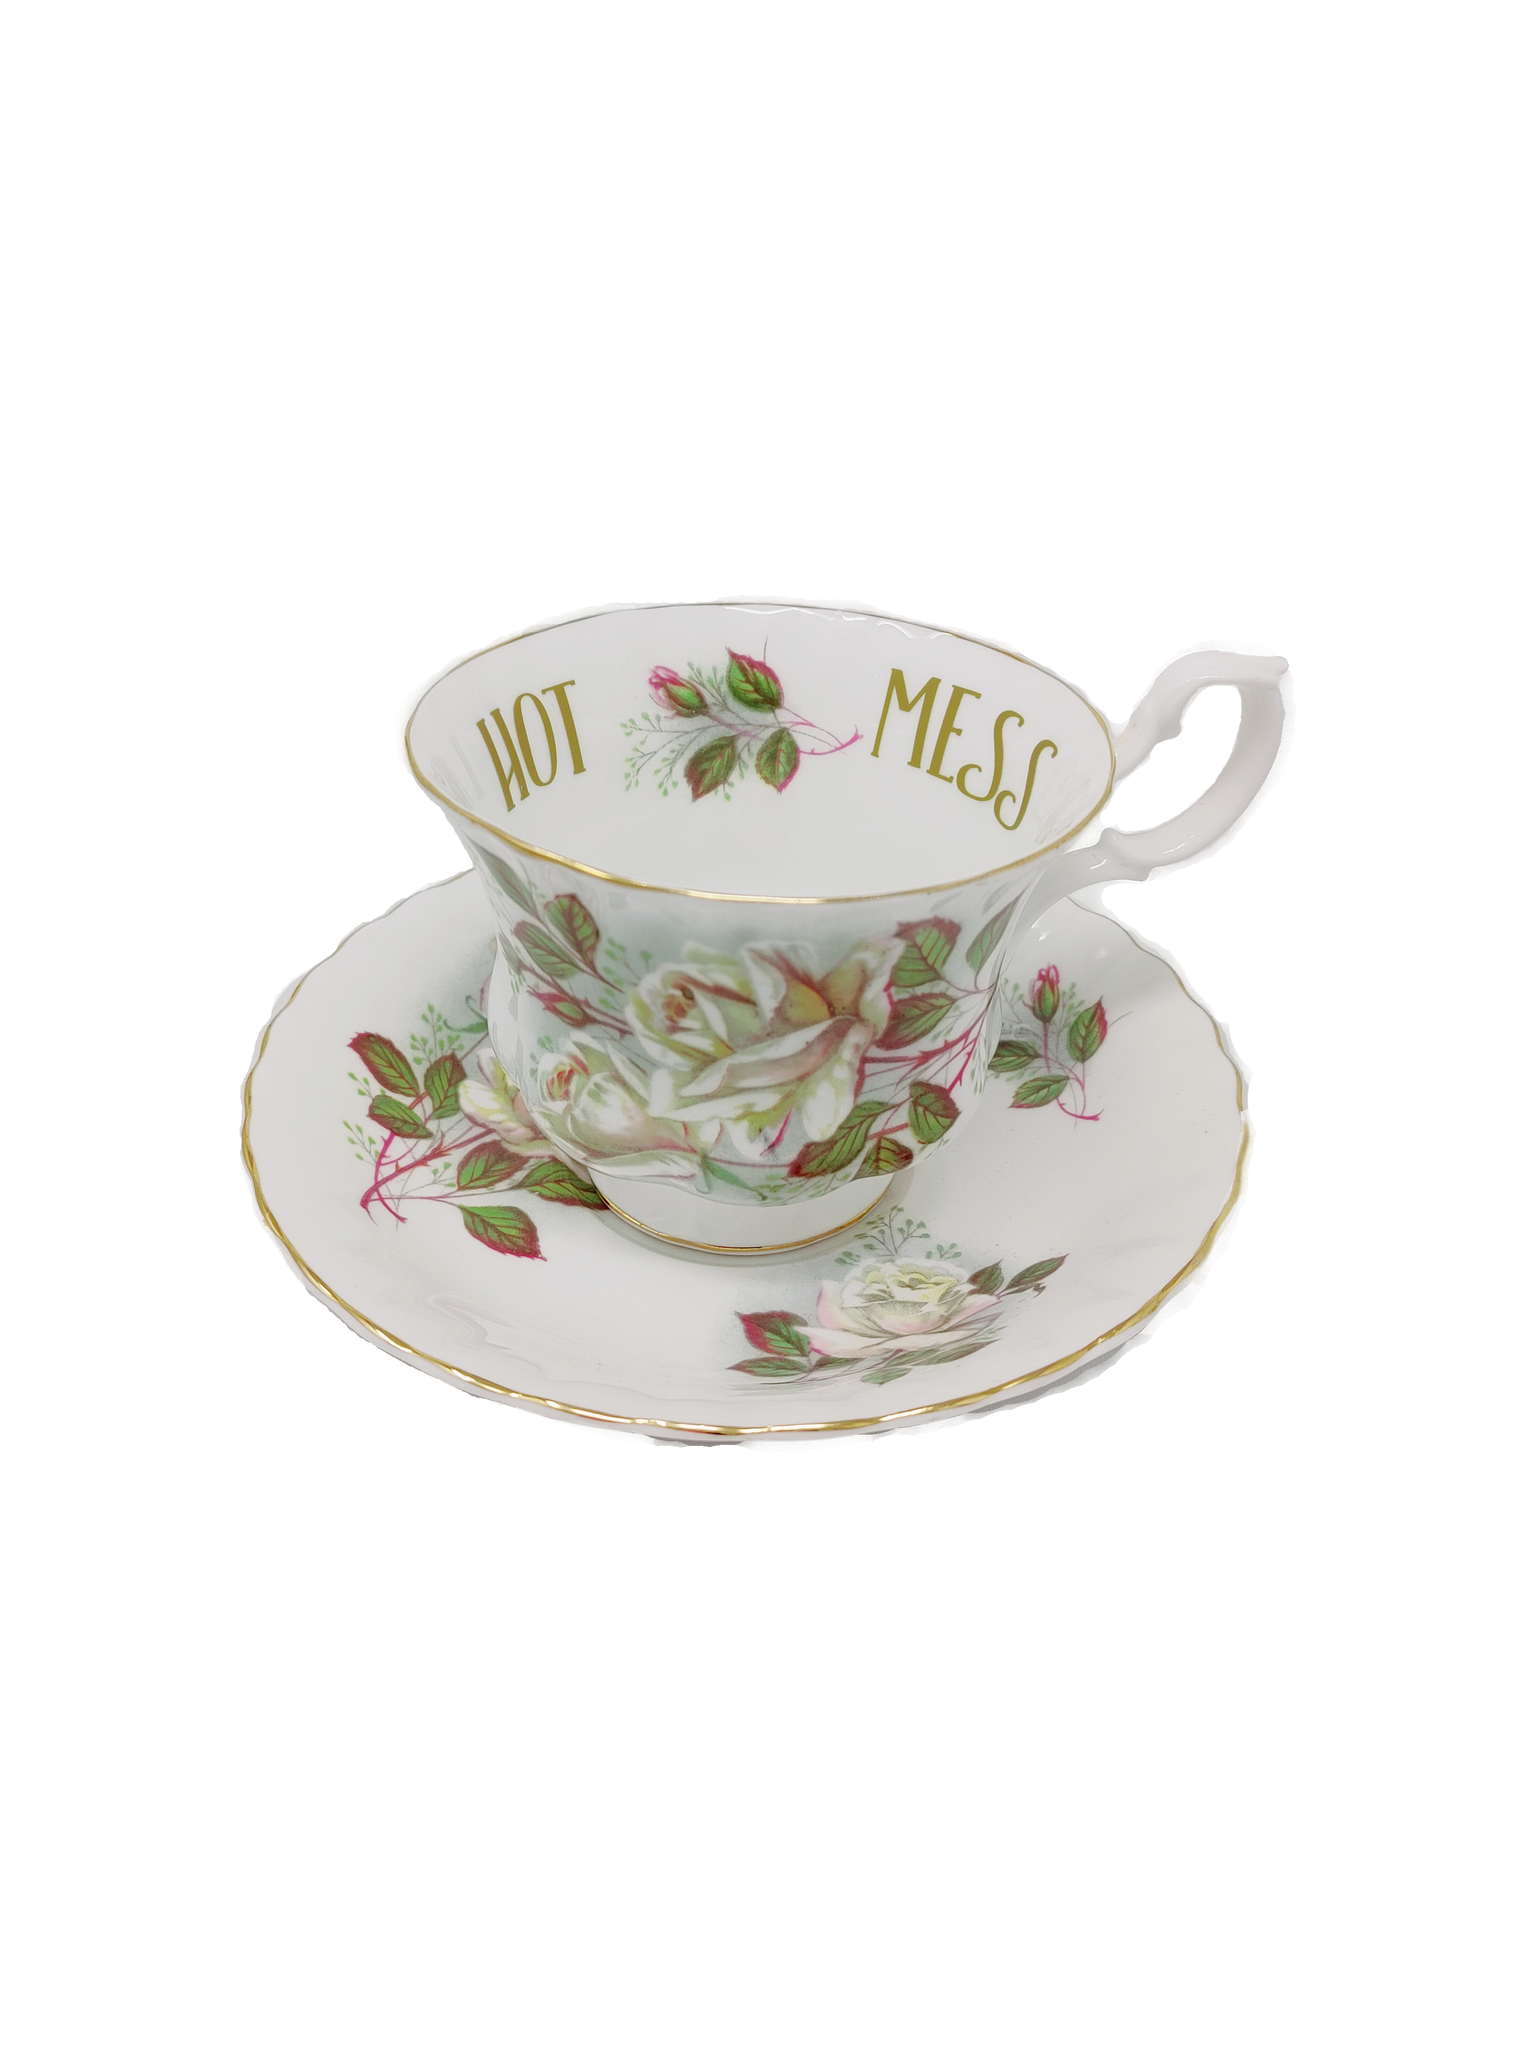 """Hot Mess"" Teacup + Saucer"